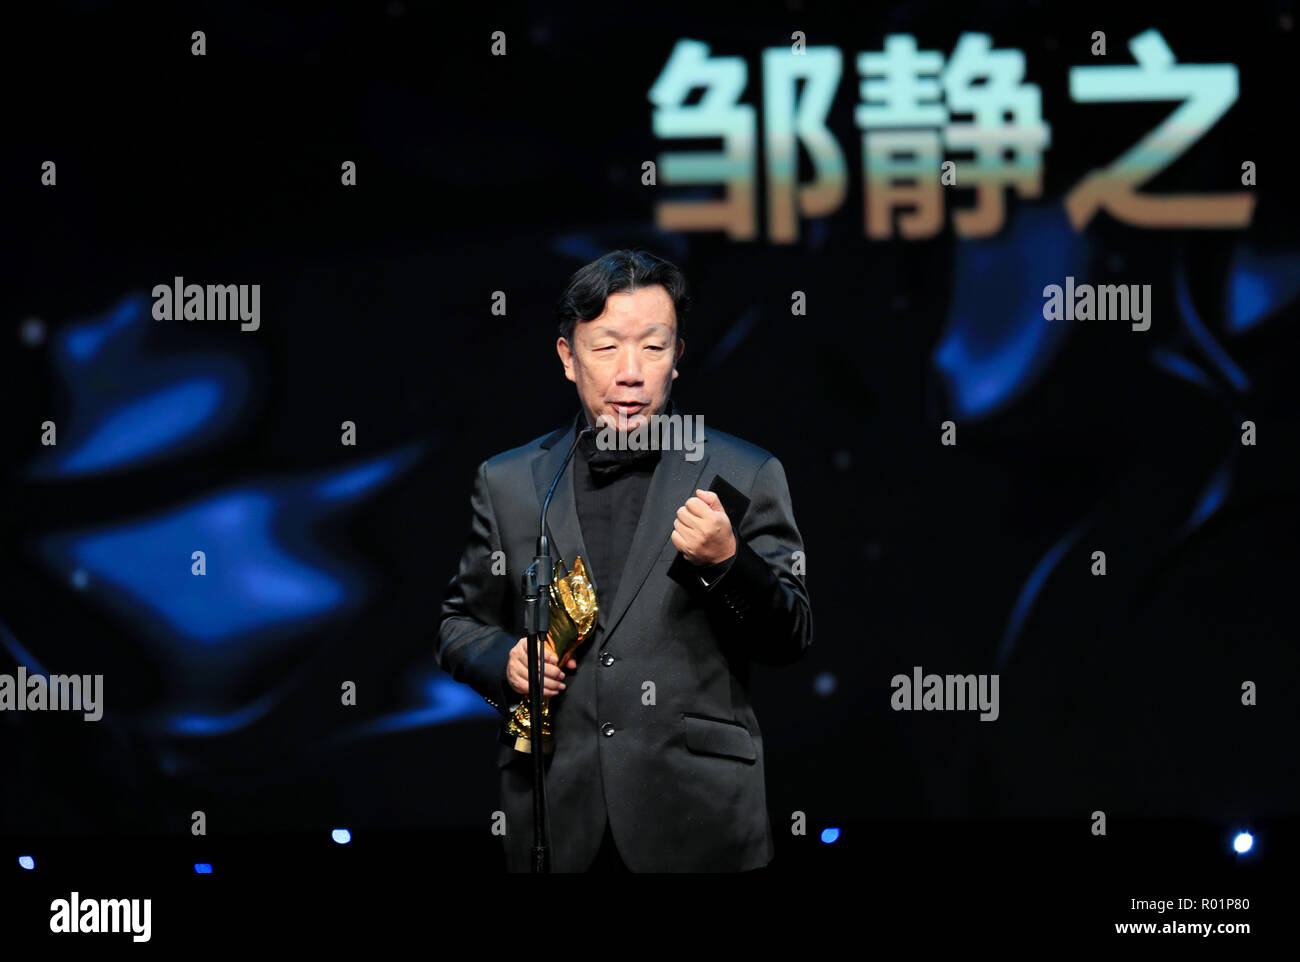 Los Angeles, USA. 30th Oct, 2018. Writer Zou Jingzhi who won the Outstanding Achievement Award, receives the trophy during the awarding ceremony of the 14th Chinese American Film Festival (CAFF) in Los Angeles, the United States, Oct. 30, 2018. The 14th Chinese American Film Festival (CAFF) kicked off Tuesday at the Ricardo Montalban Theater in Hollywood in the U.S. city of Los Angeles. Credit: Li Ying/Xinhua/Alamy Live News - Stock Image